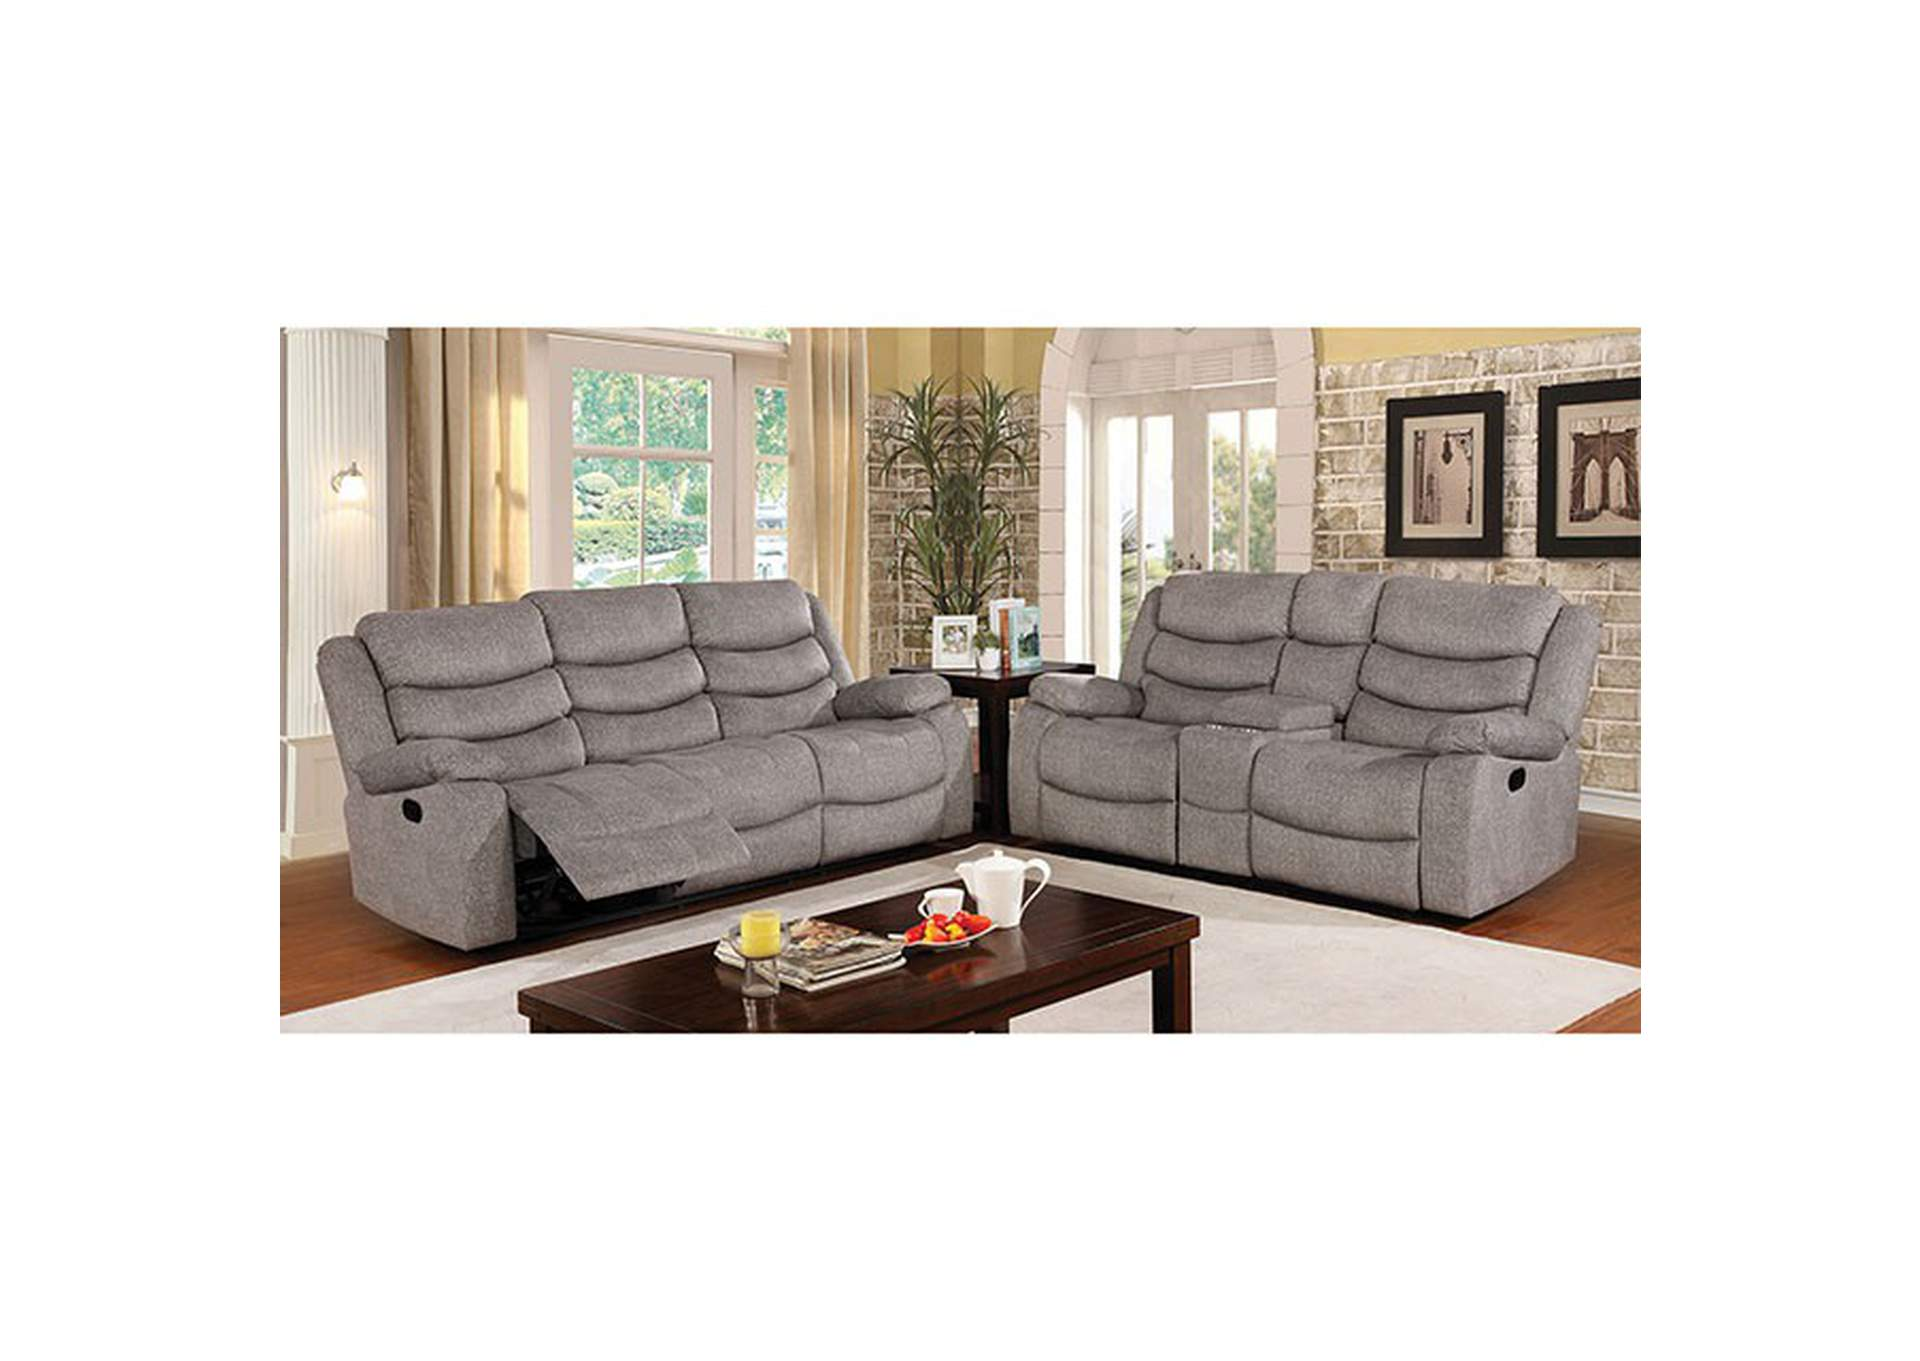 Castleford Light Gray Sofa,Furniture of America